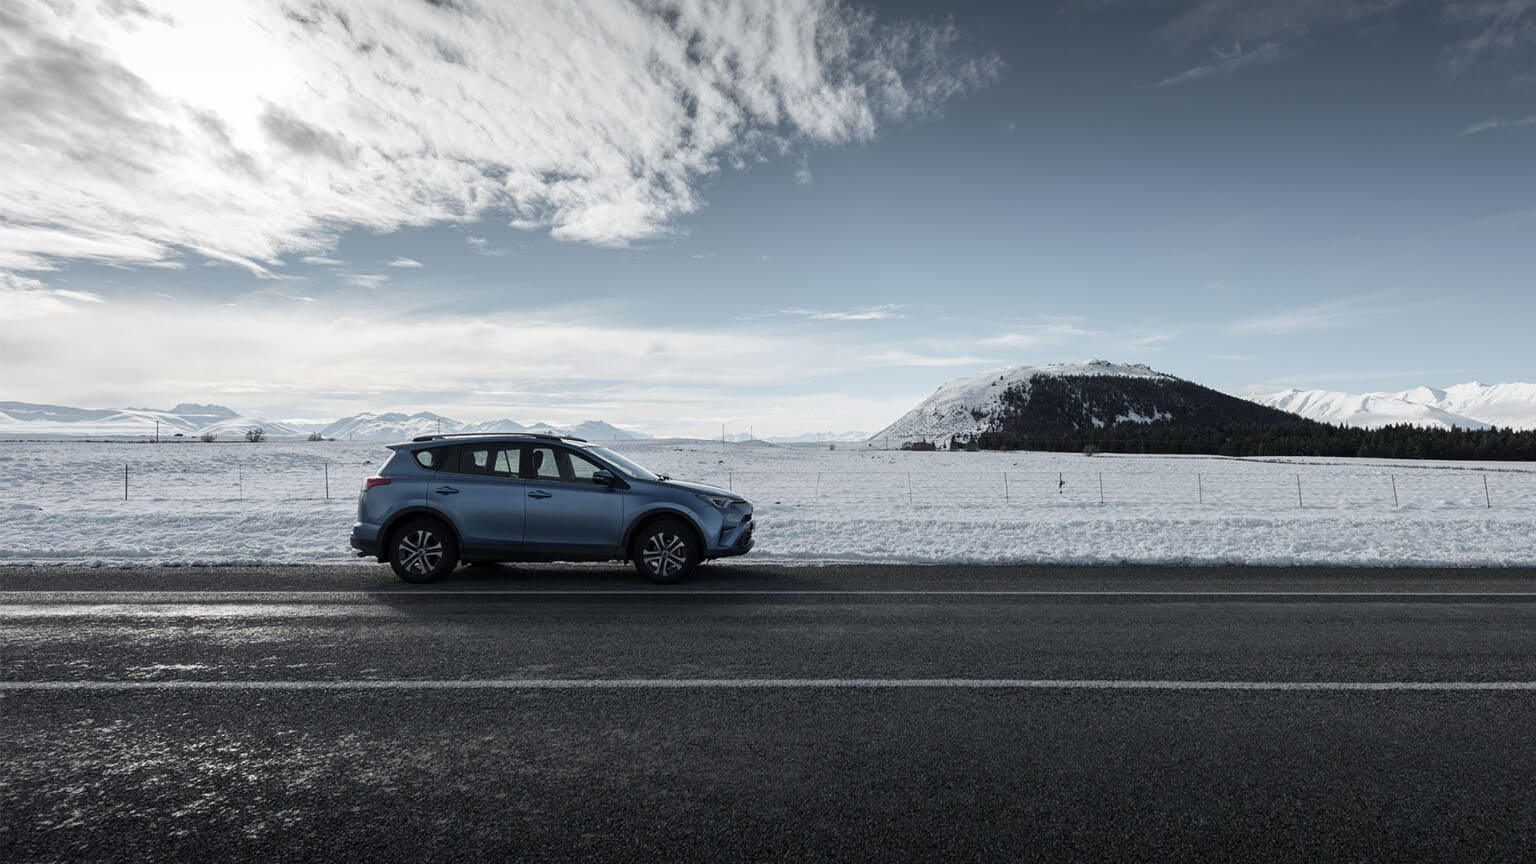 Car with a snowy backdrop